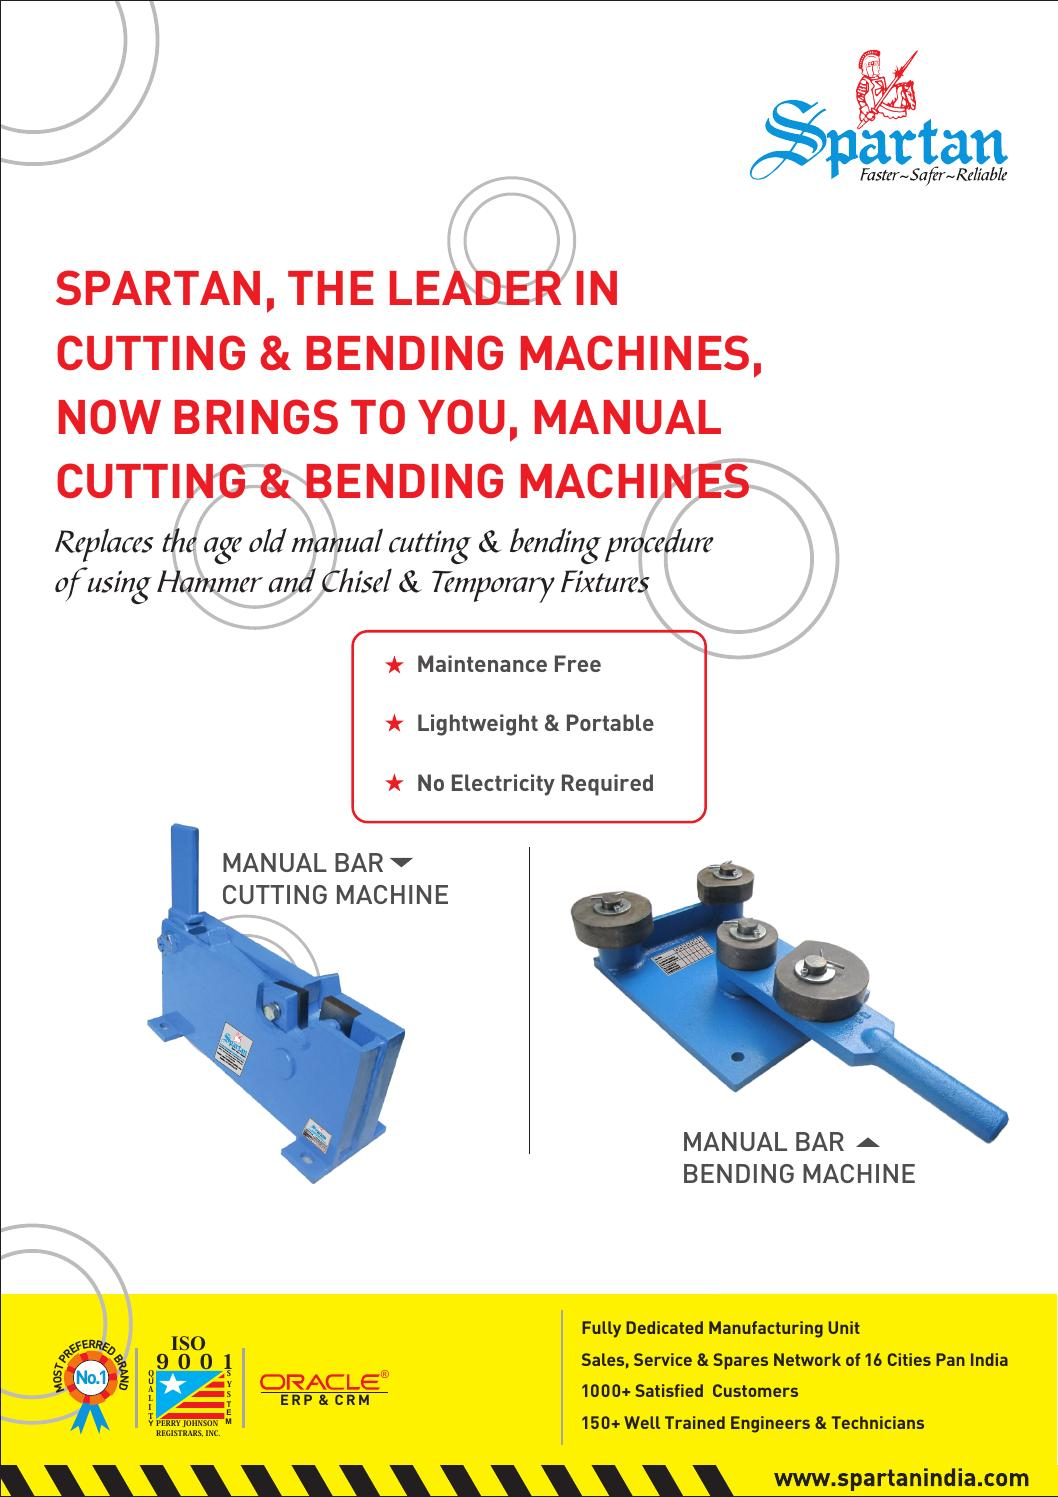 Manual Cutting and Bending - Spartan India by SpartanIndia